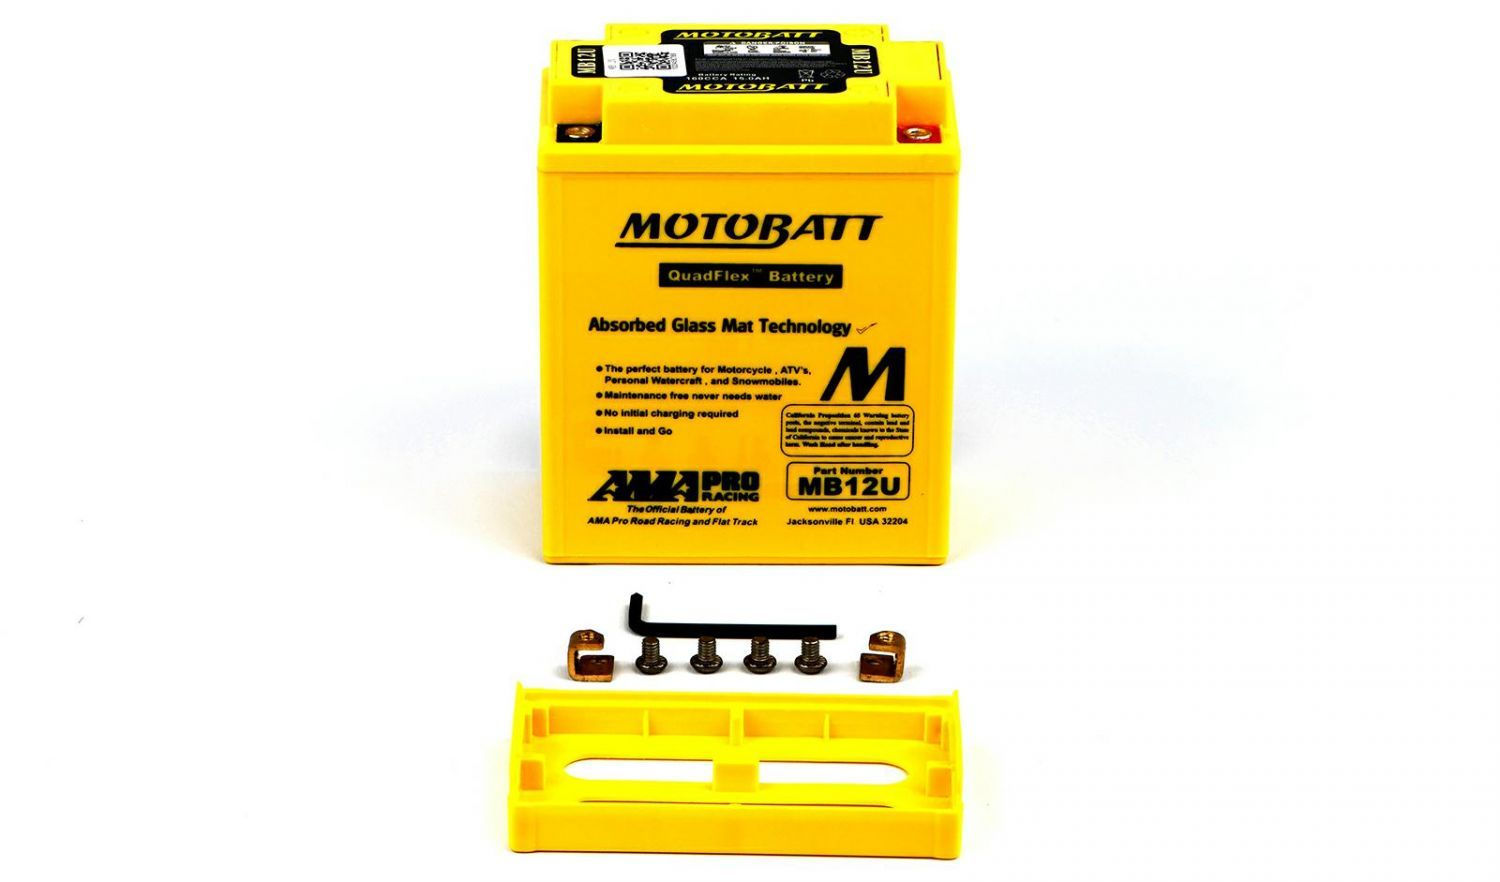 Motobatt Batteries - 501120MY image